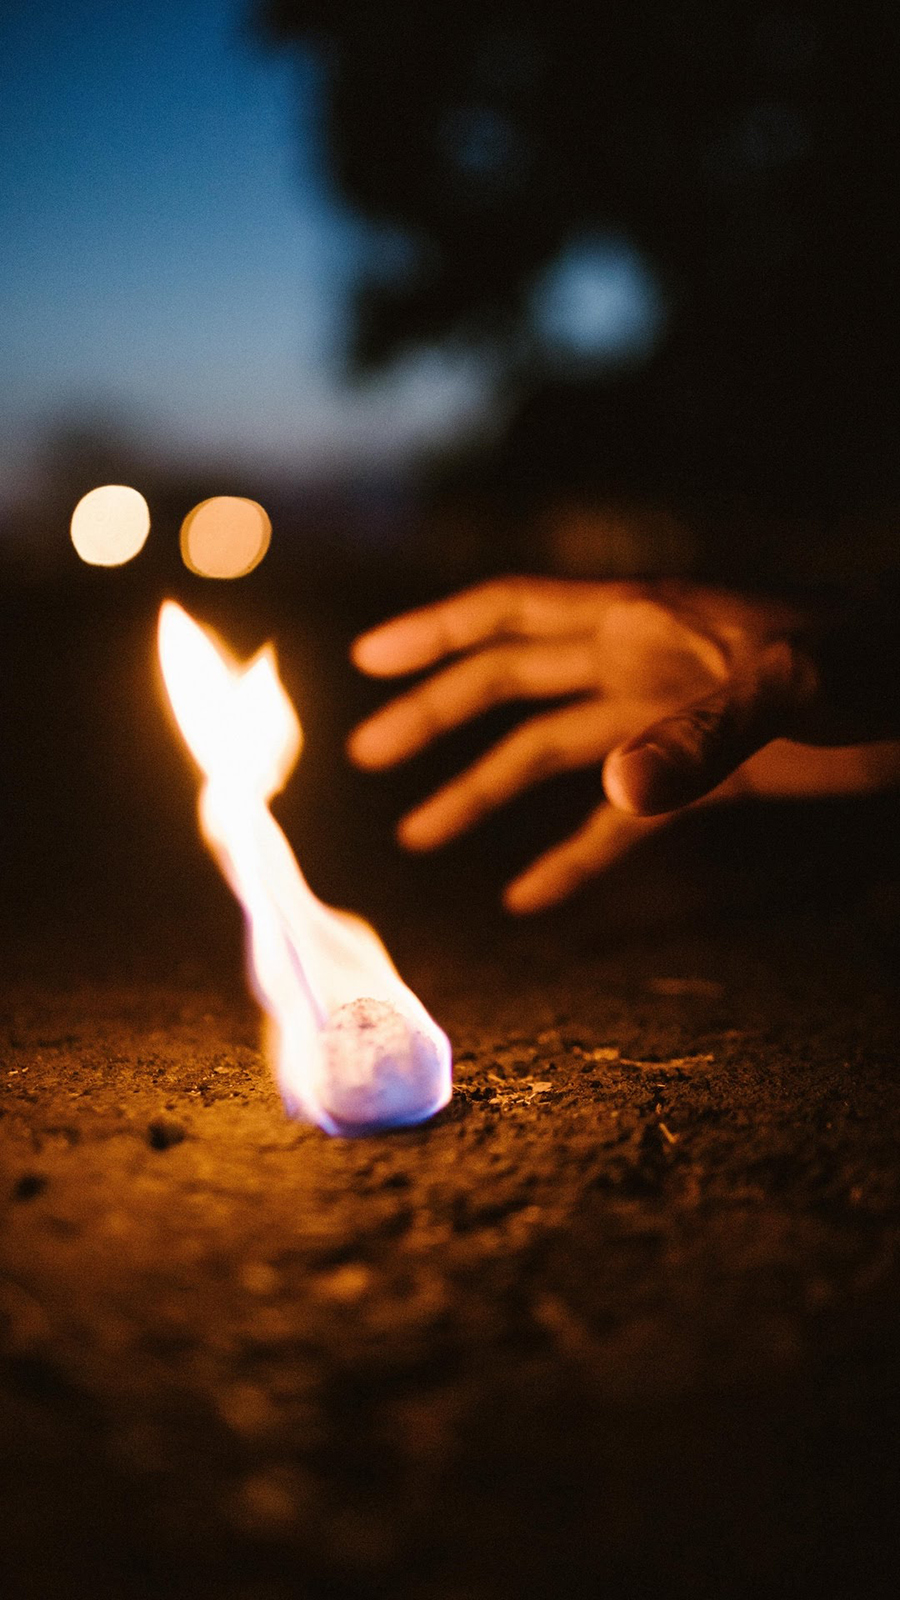 Fire, Hand, Light, Nature Wallpapers Free Download